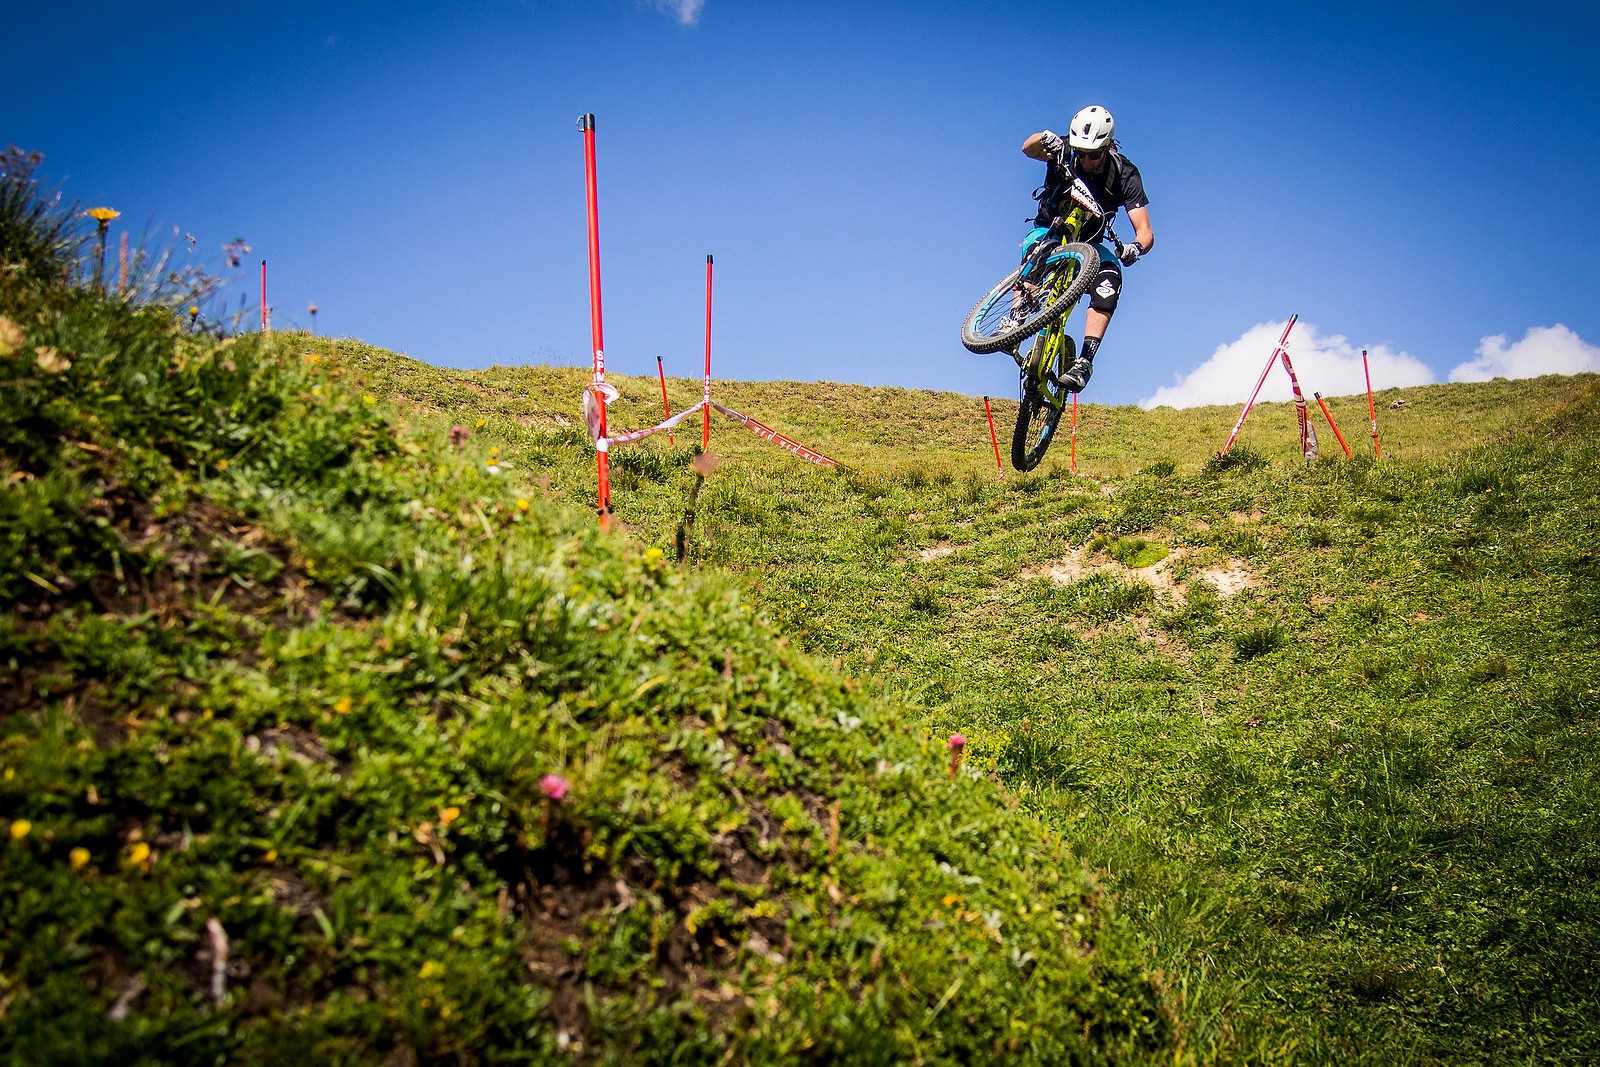 Chris Ball Getting Some at EWS 6, Val d'Isere - 2013 Enduro World Series 6, Enduro Des Nations Photo Recon - Mountain Biking Pictures - Vital MTB